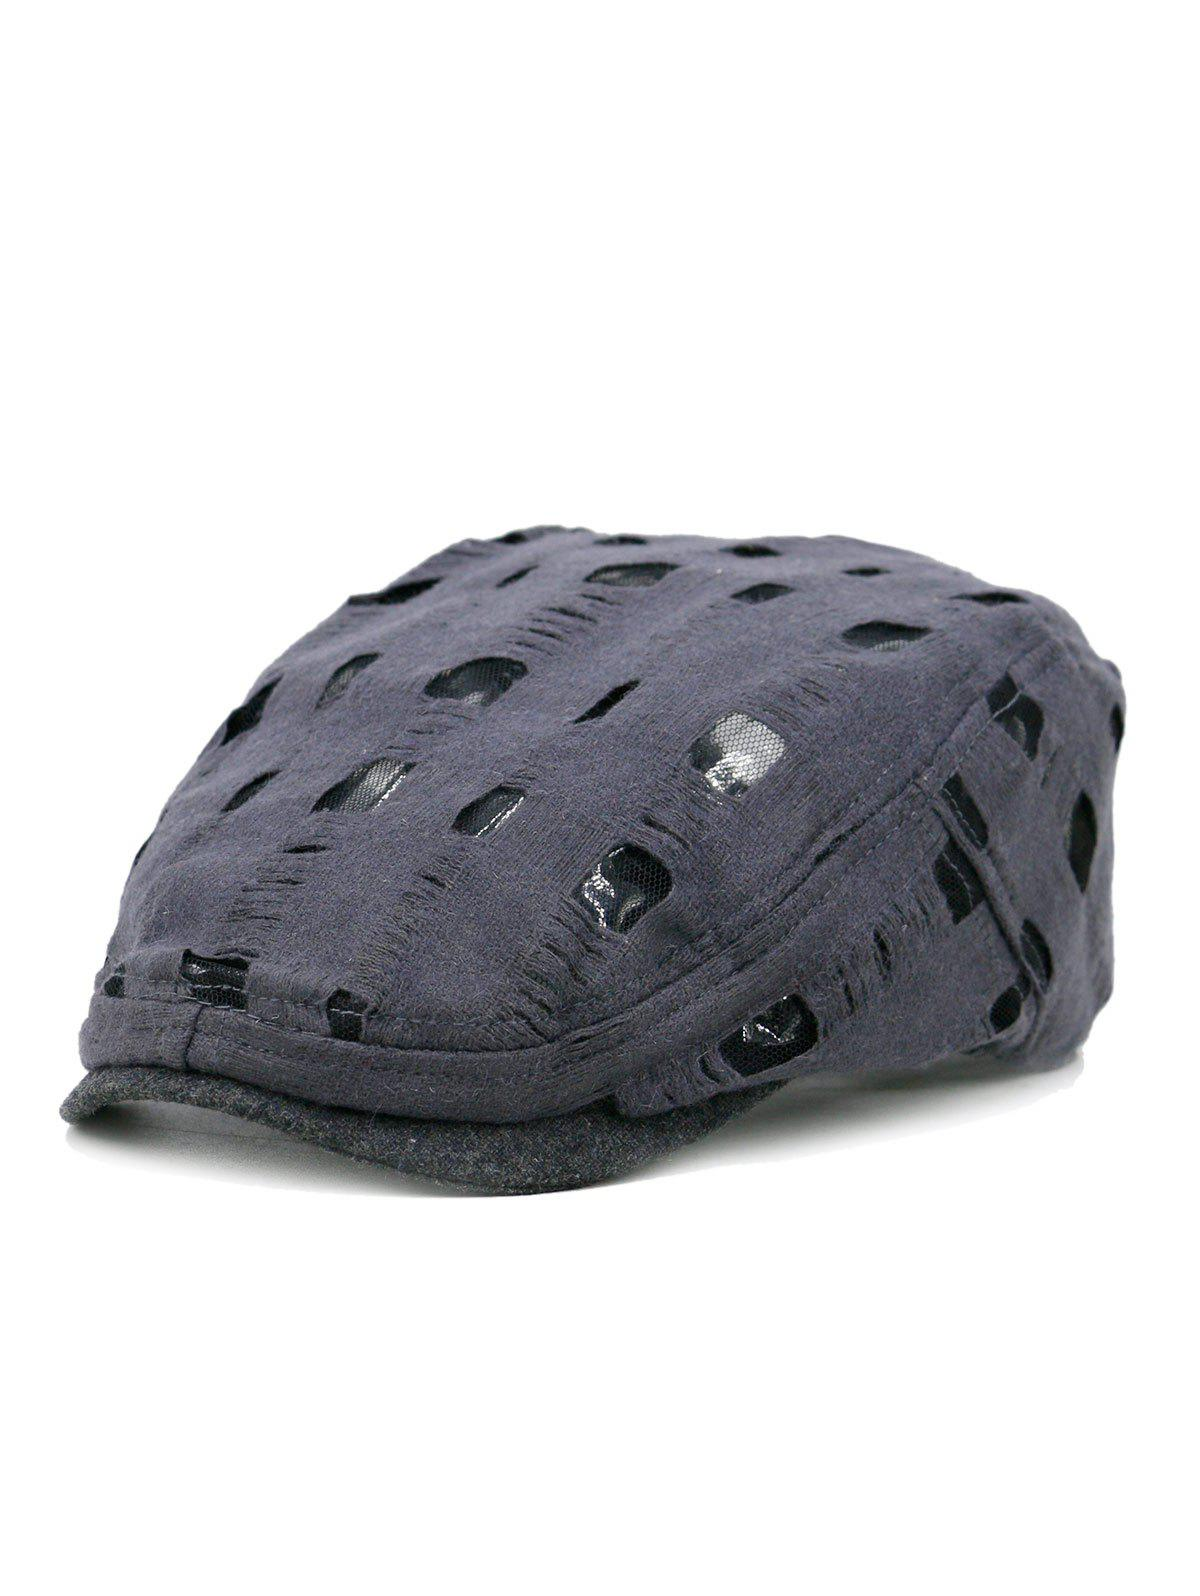 Online Simple Hollow Hole Pattern Embellished Newsboy Hat